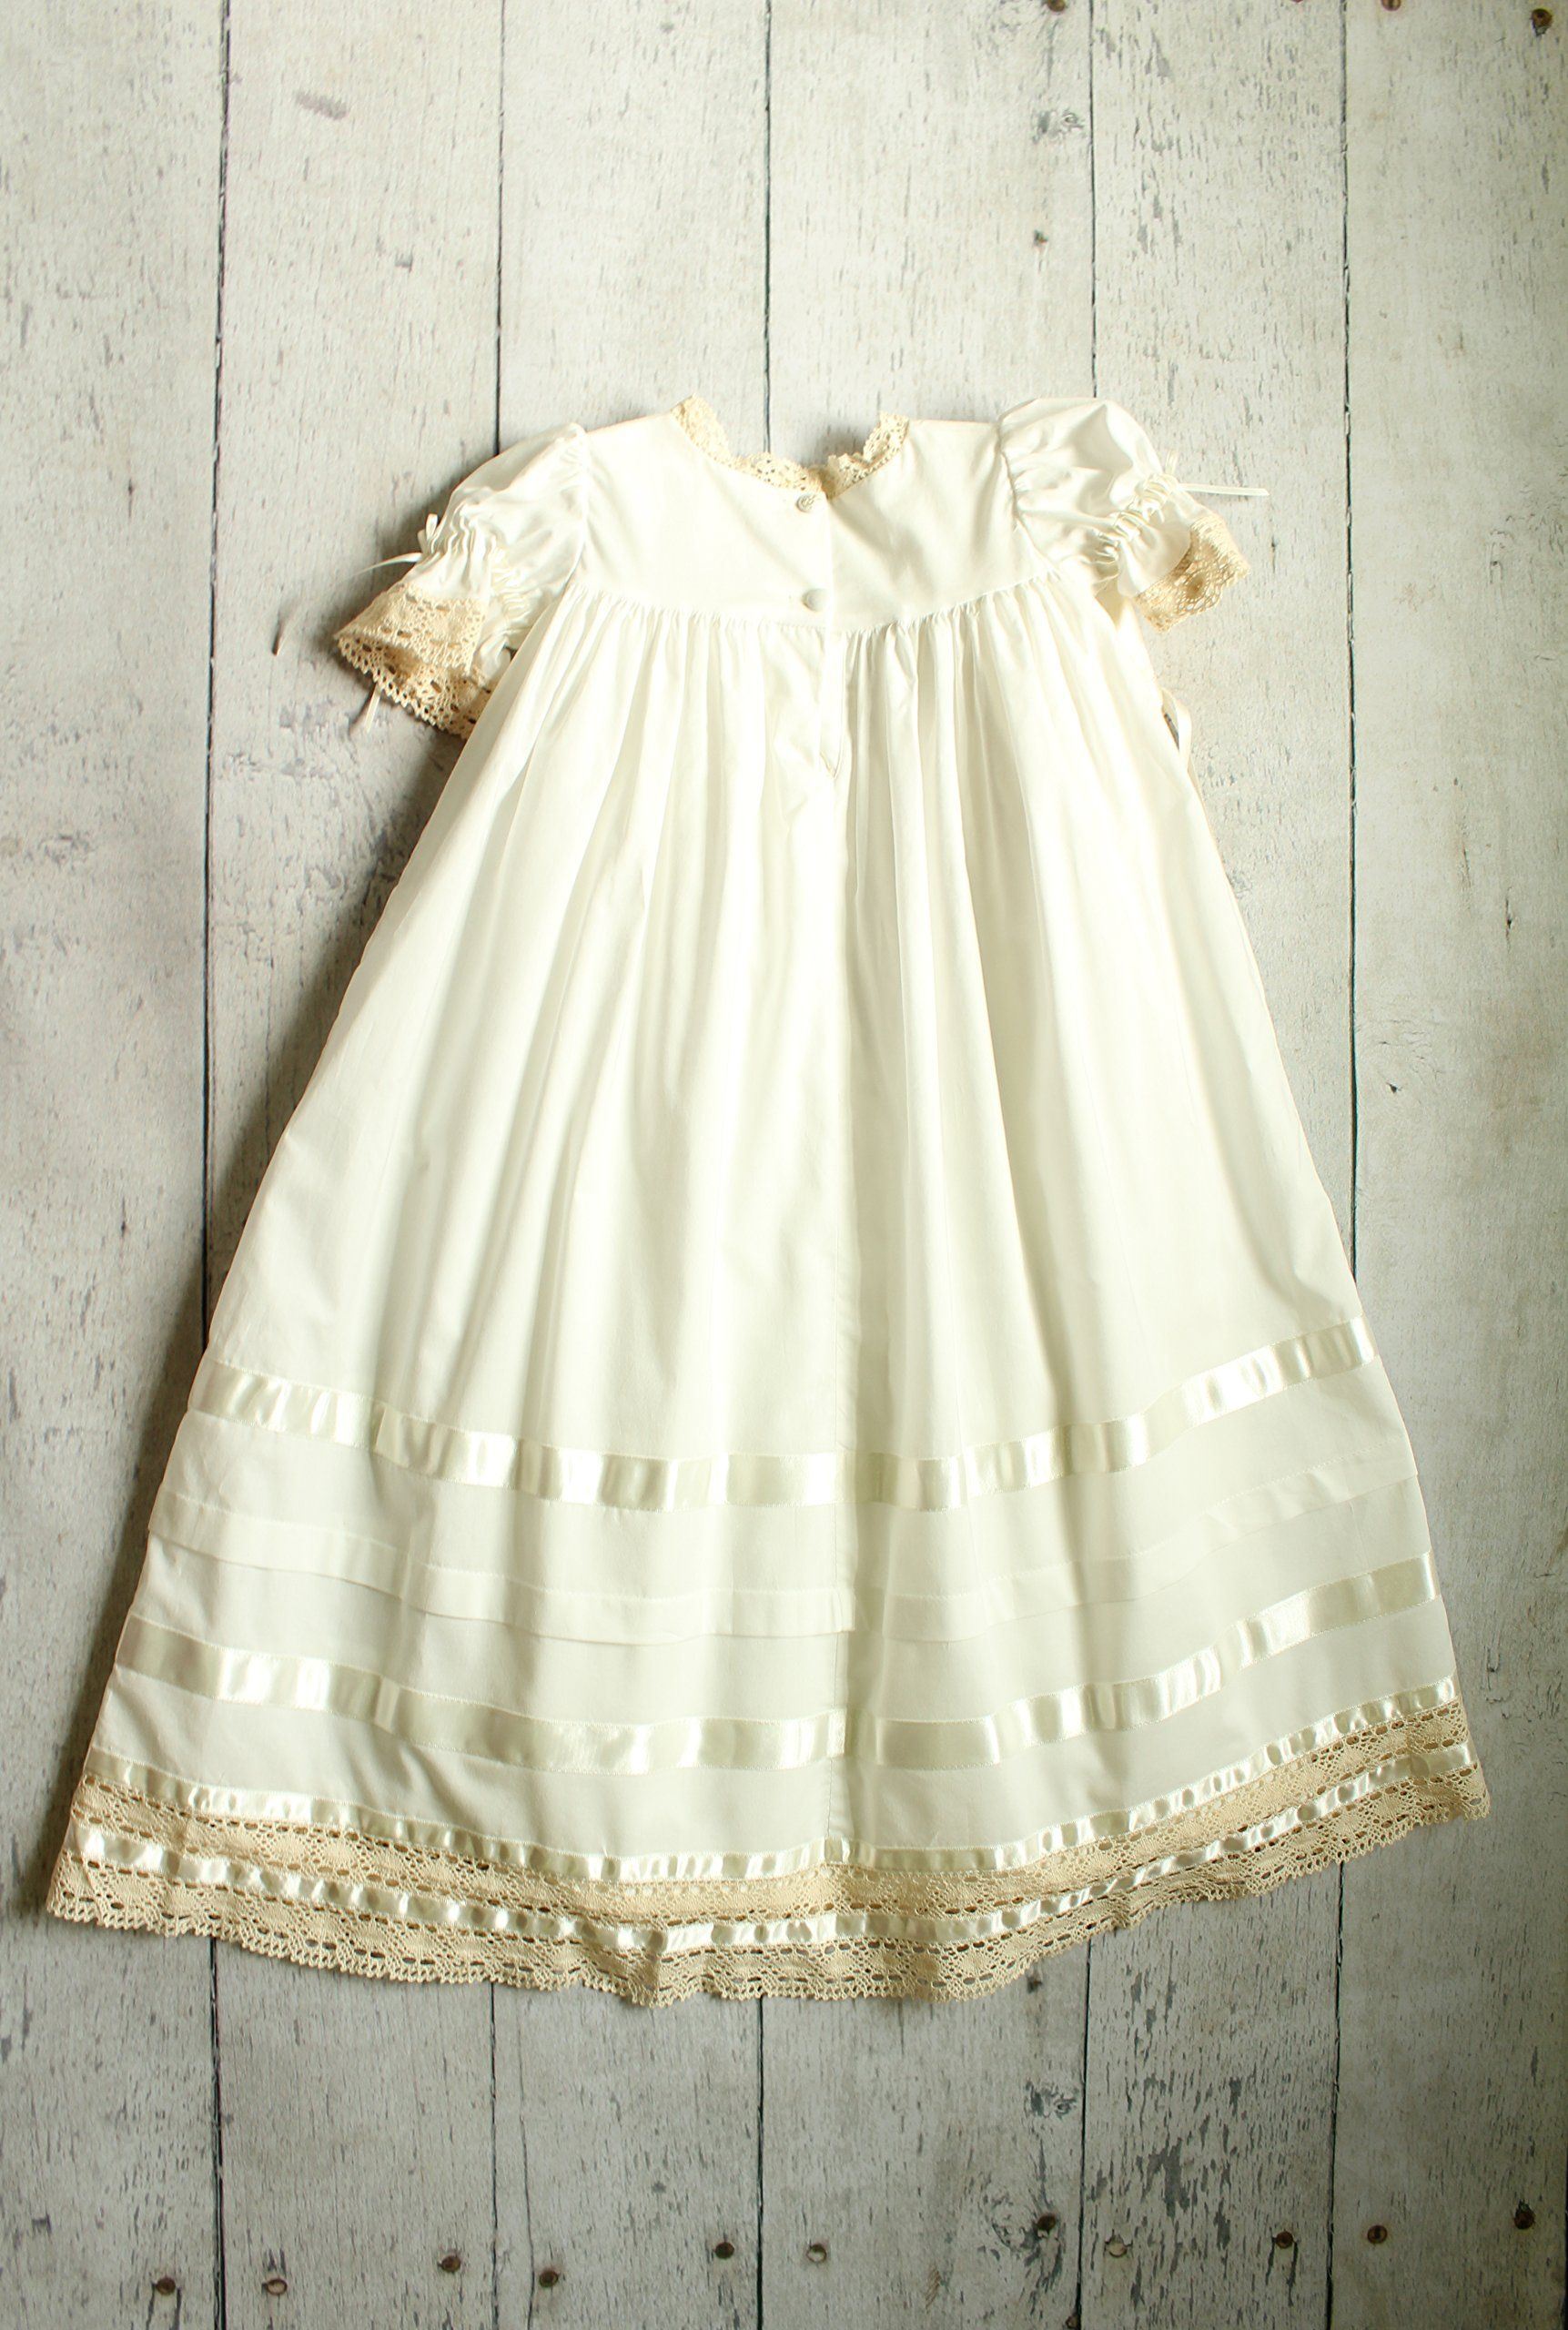 101e7a52ecc0 Strasburg Children Babies Lace Christening Gown Heirloom Baptism Dress  w/Bonnet 6 Month White *** Be certain to take a look at this outstanding  product.